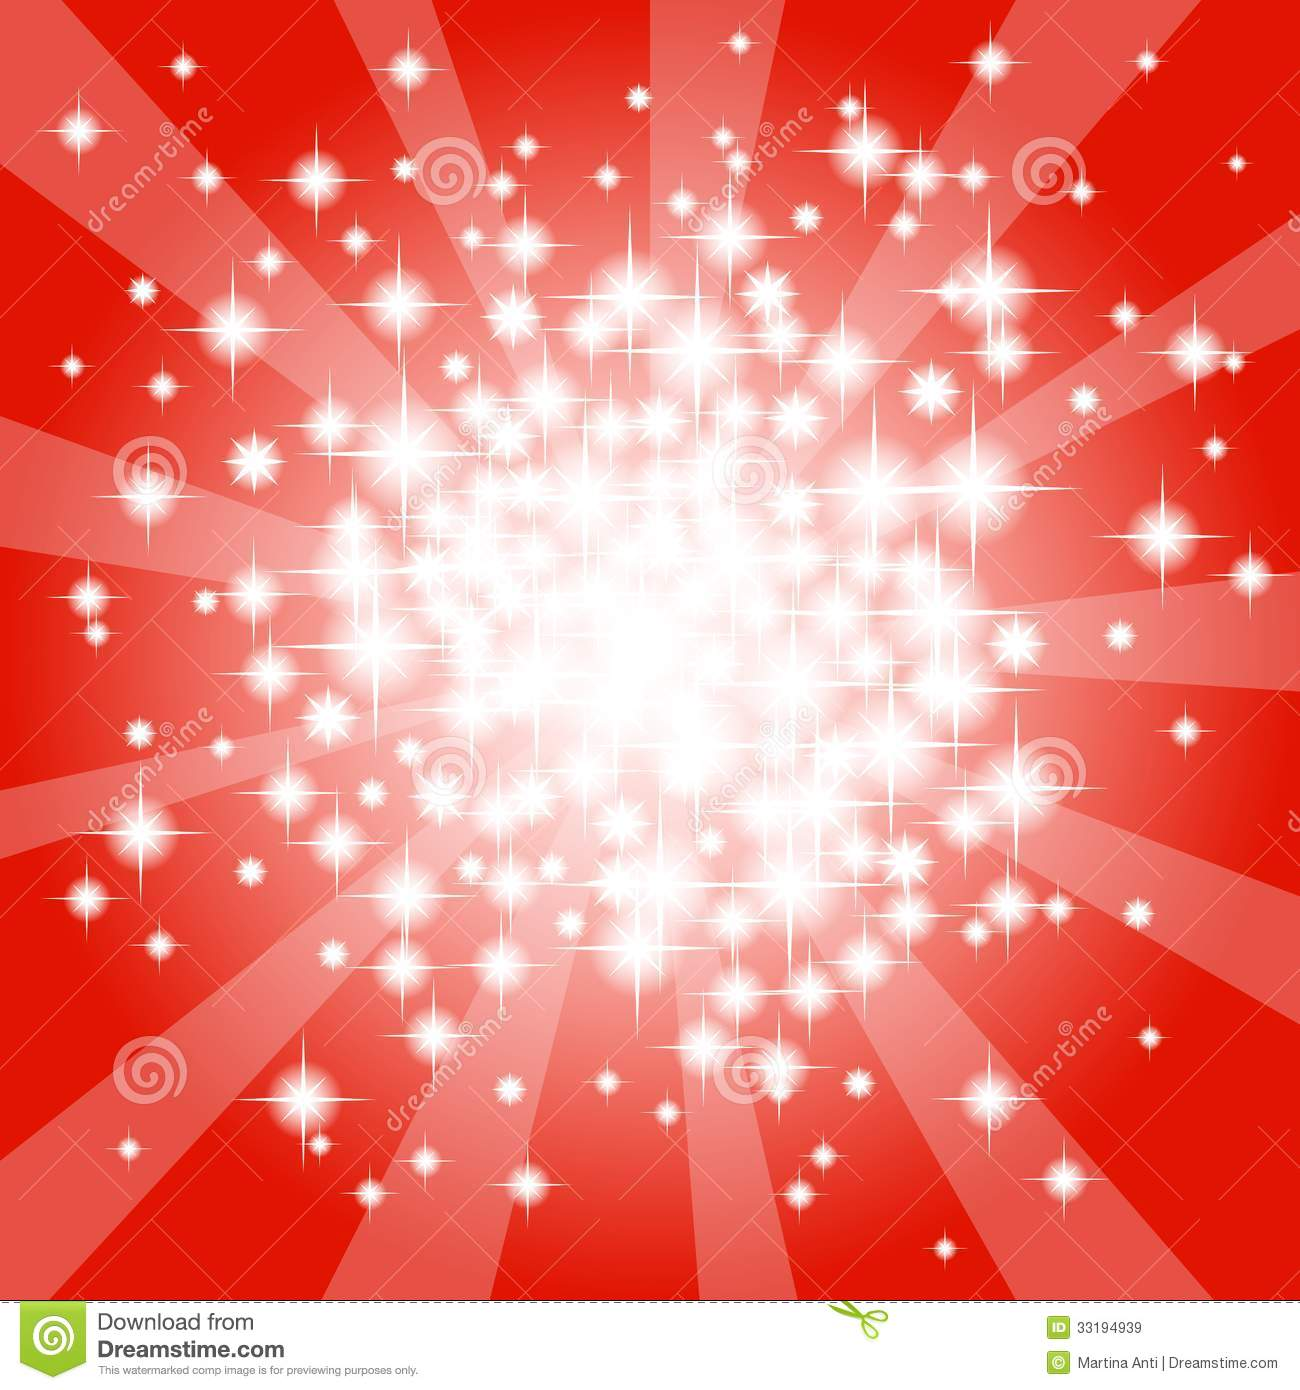 red star background - photo #24